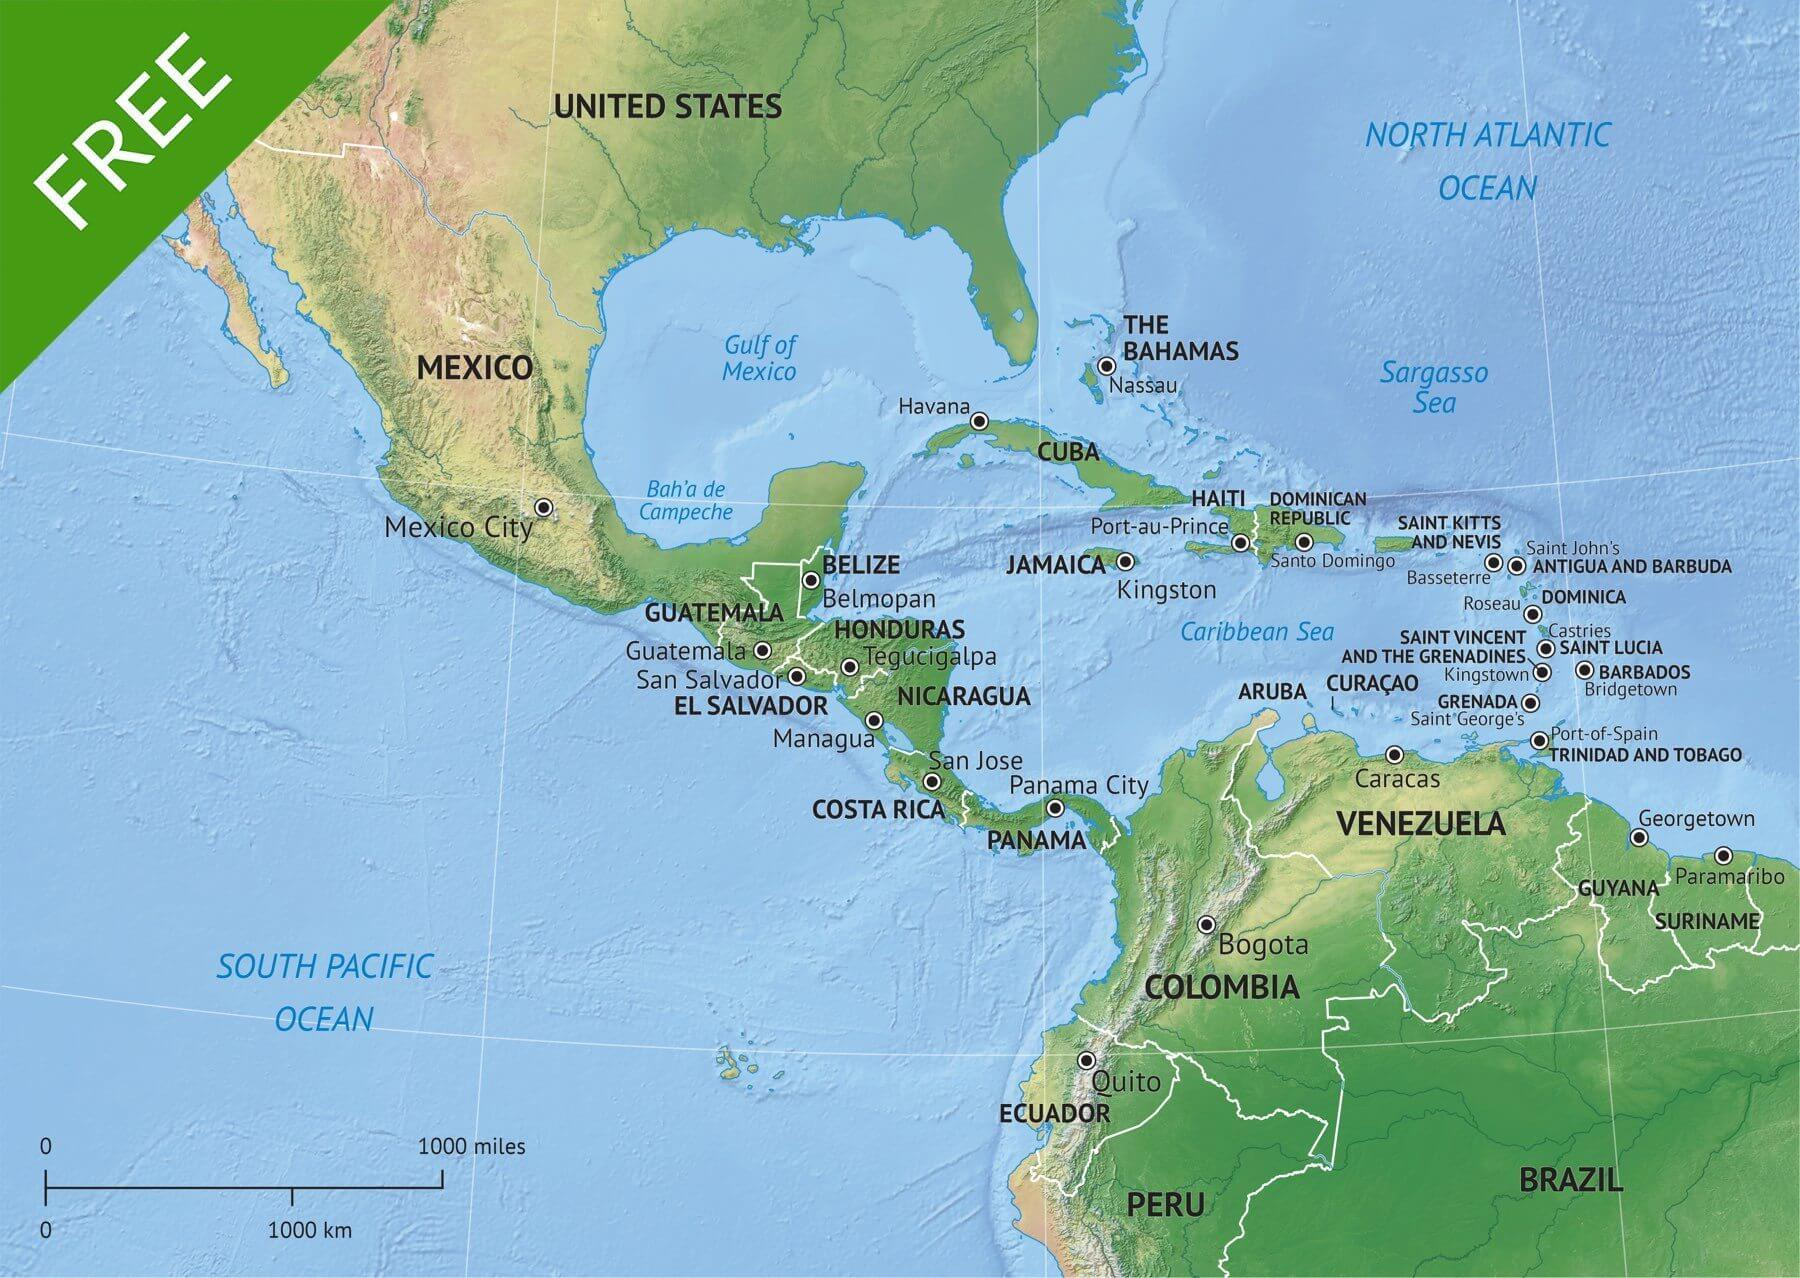 Free Vector Map Of North America.Free Vector Map Middle Central America One Stop Map